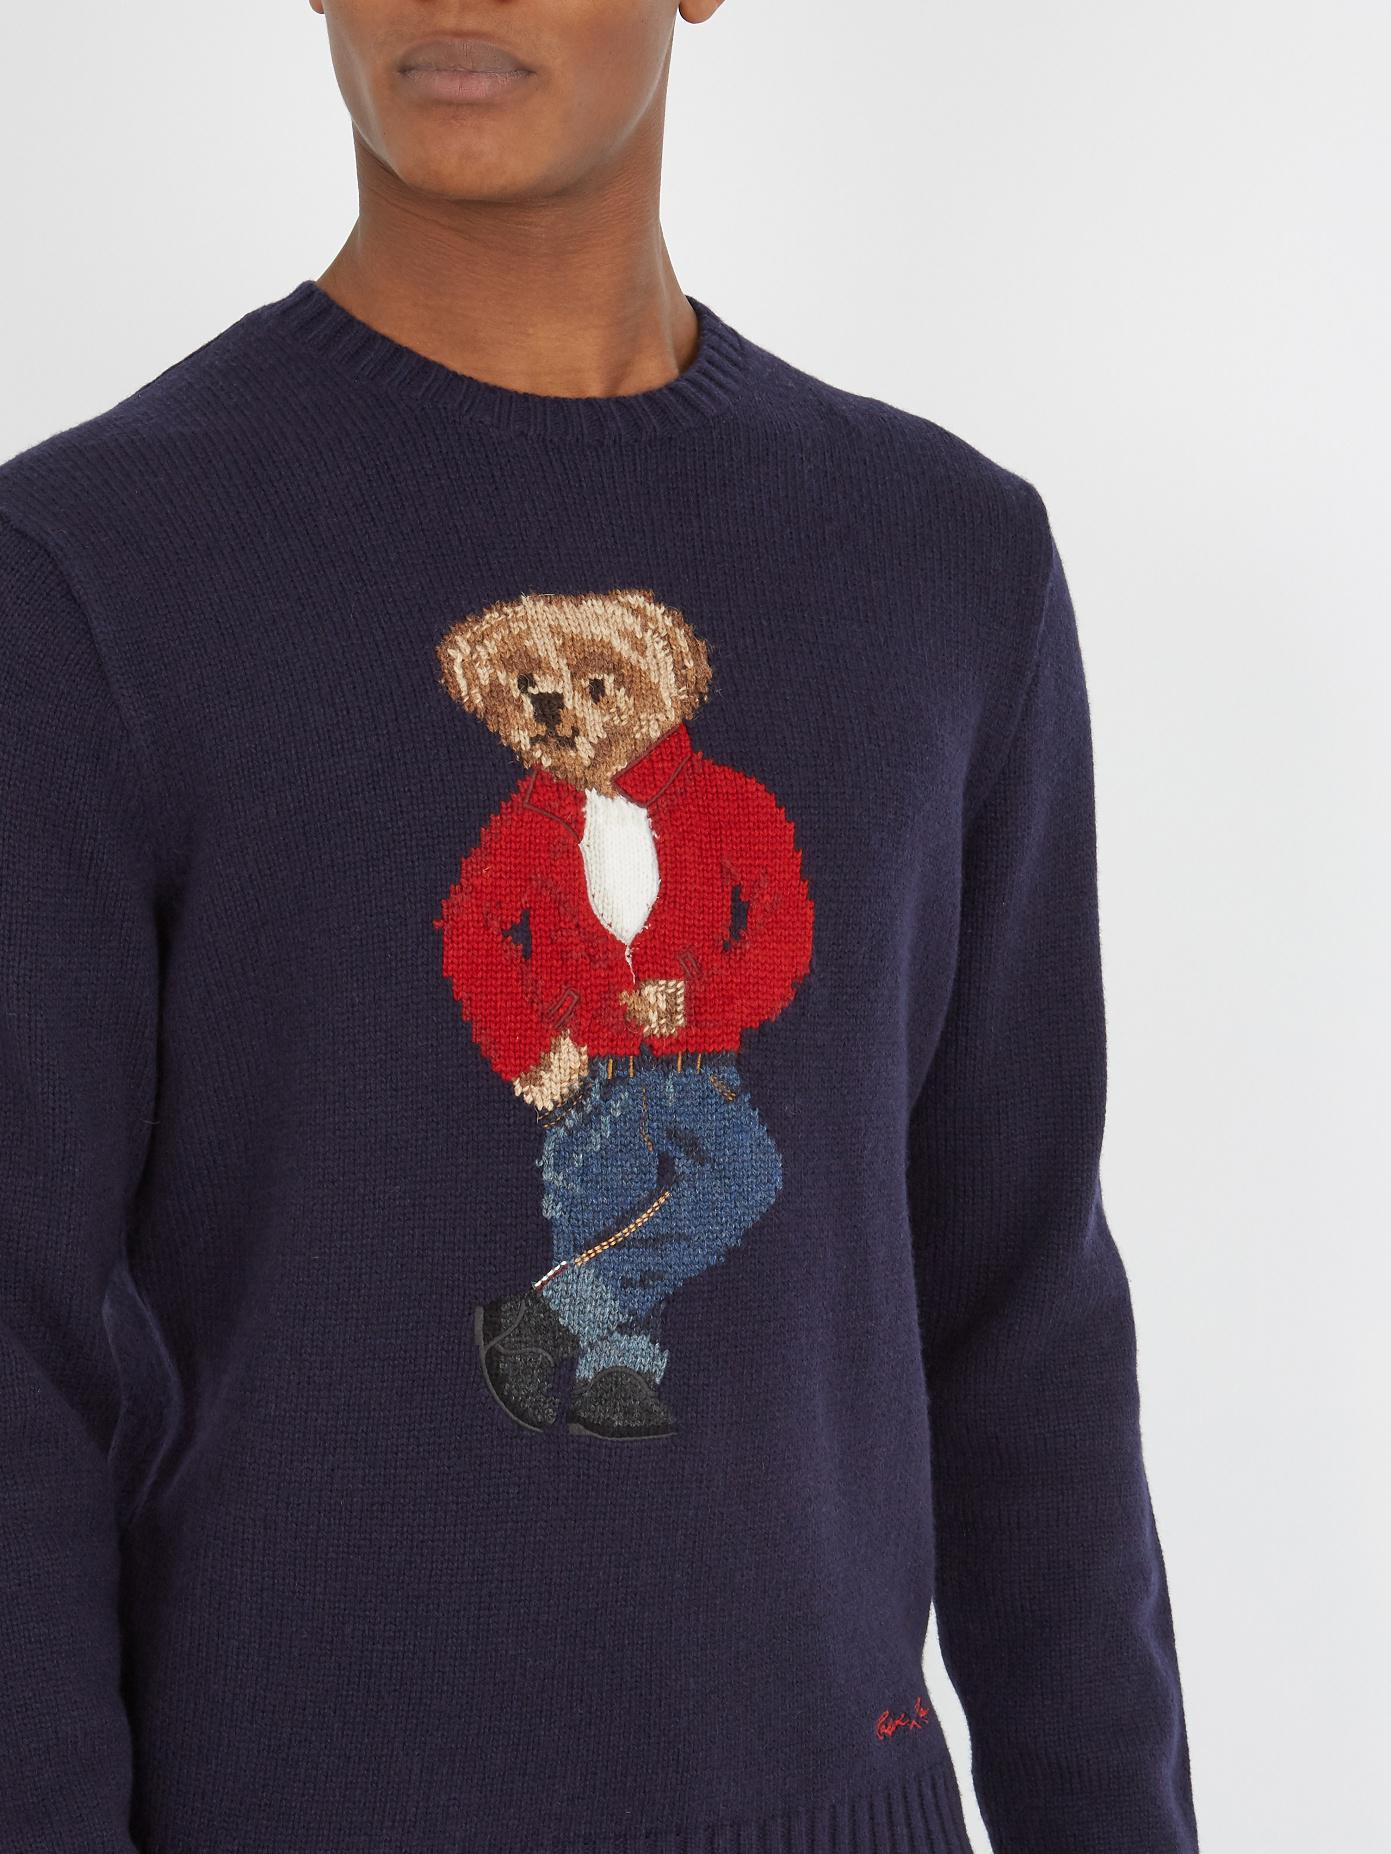 « Alzheimer's Sweater Polo Bear Ralph Intarsia Lauren Blend Wool hrCtsdQ